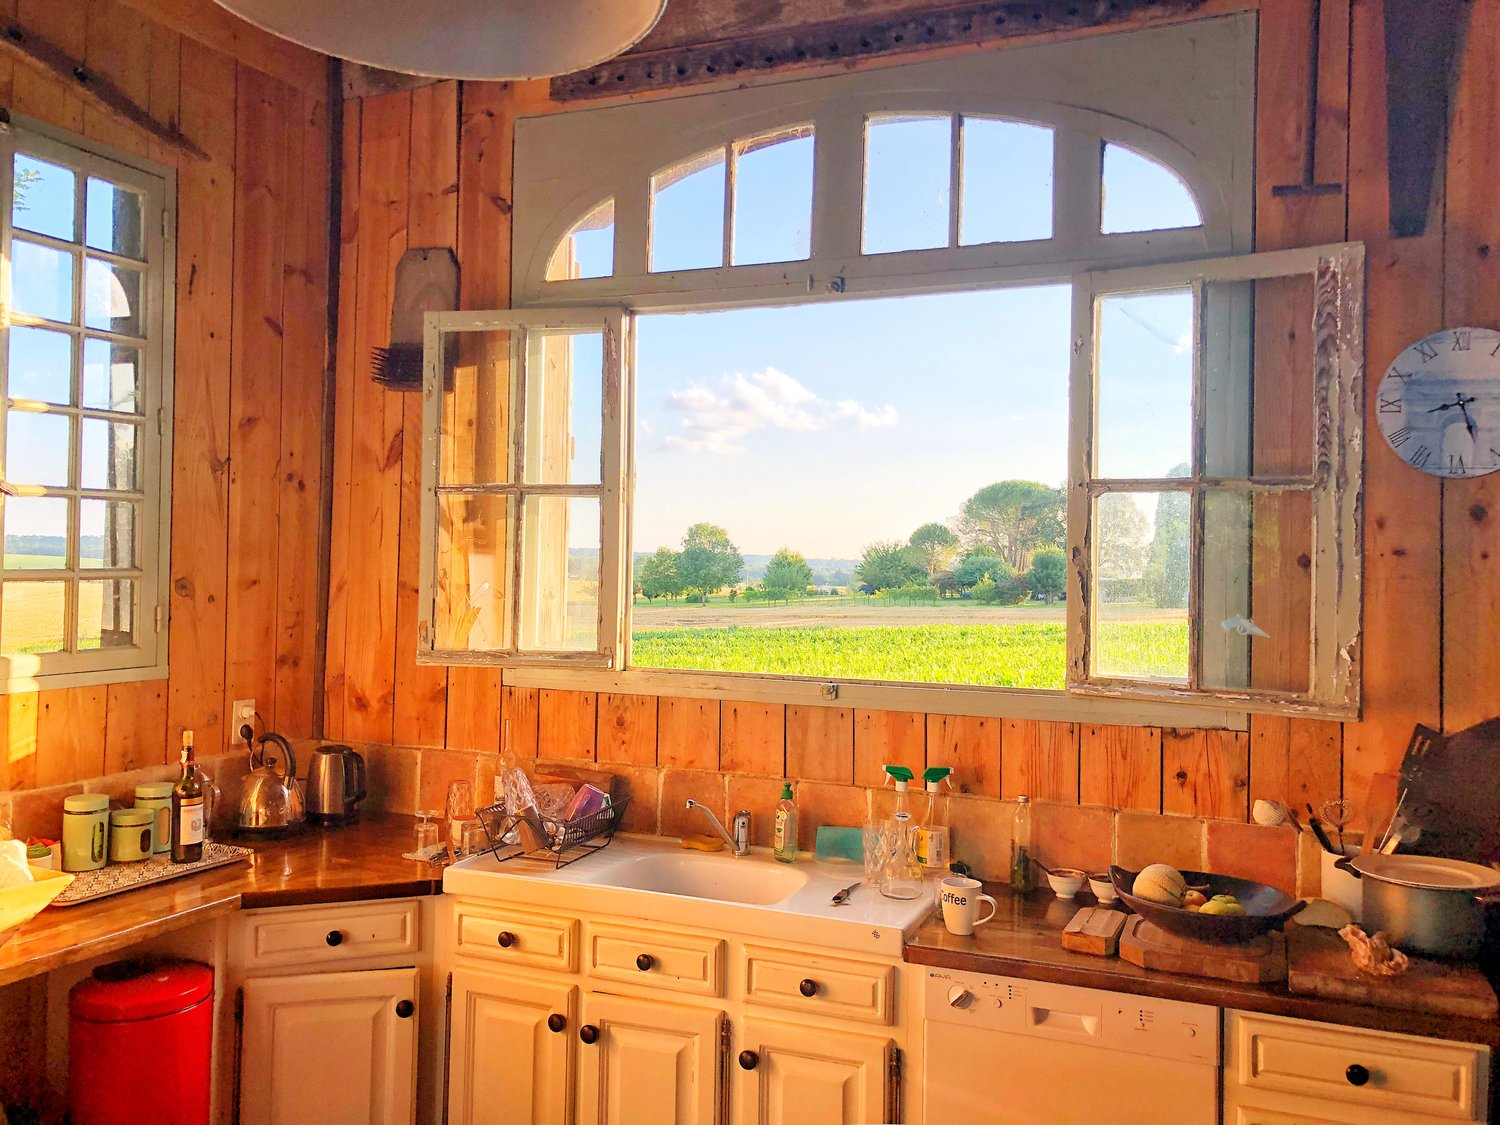 the kitchen view in the shamanic studies barn…